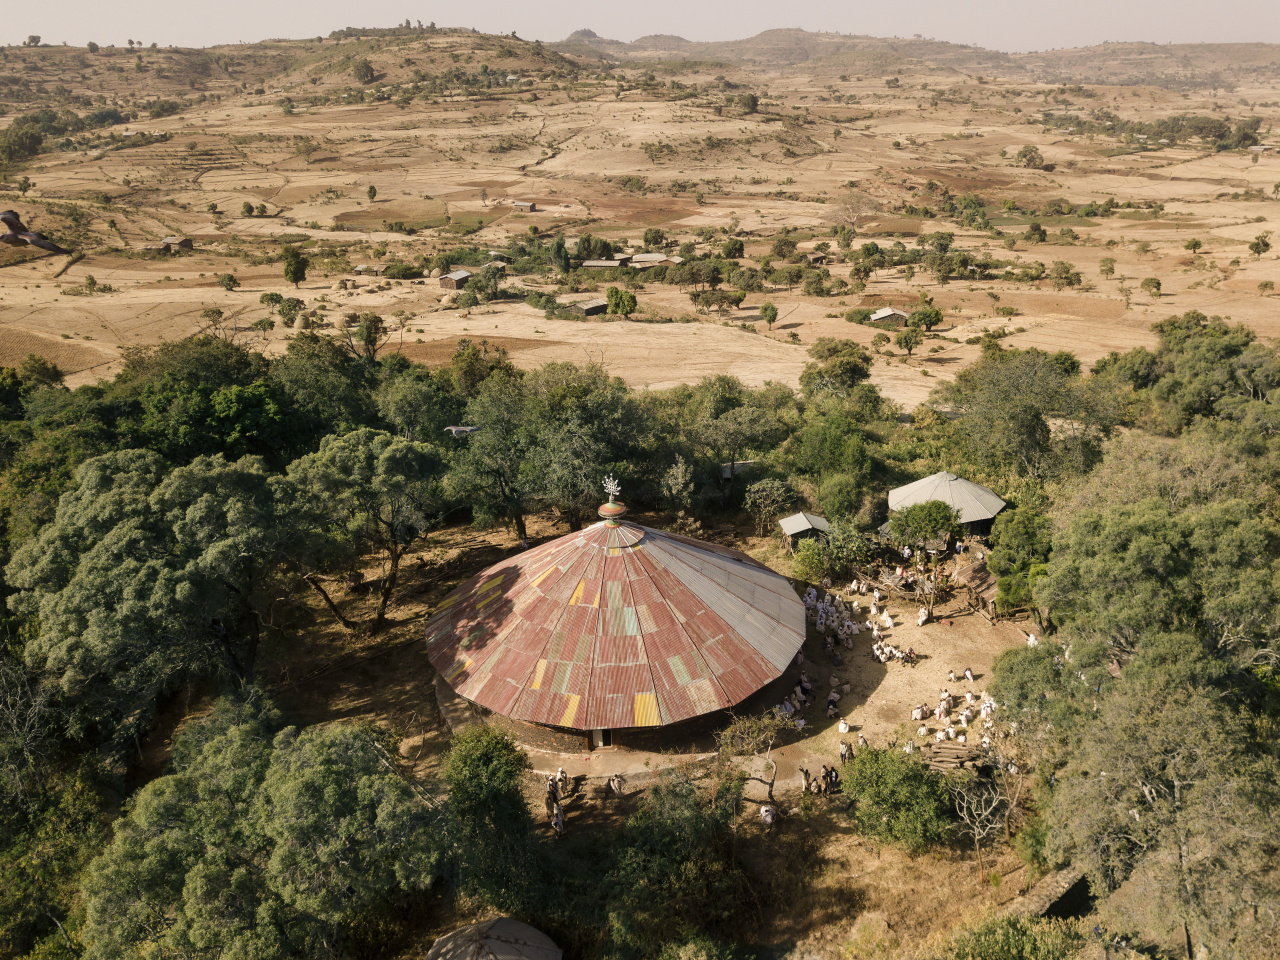 Kieran Dodds World Photography Organisation: Hierotopia Interview Gebita Giyorgis Church surrounding by forest canopy with encroaching fields.  Church forest land surrounding churches have become islands of biodiversity in seas of agriculture, the last remnants of a once-expansive native cover. Conservation is a key tenet of the Tewahdo Ethiopian Orthodox which has protected them until now when these forests are threatened like never before as agriculture expands to cope with the country's booming population which is due to double over the next 30 years.